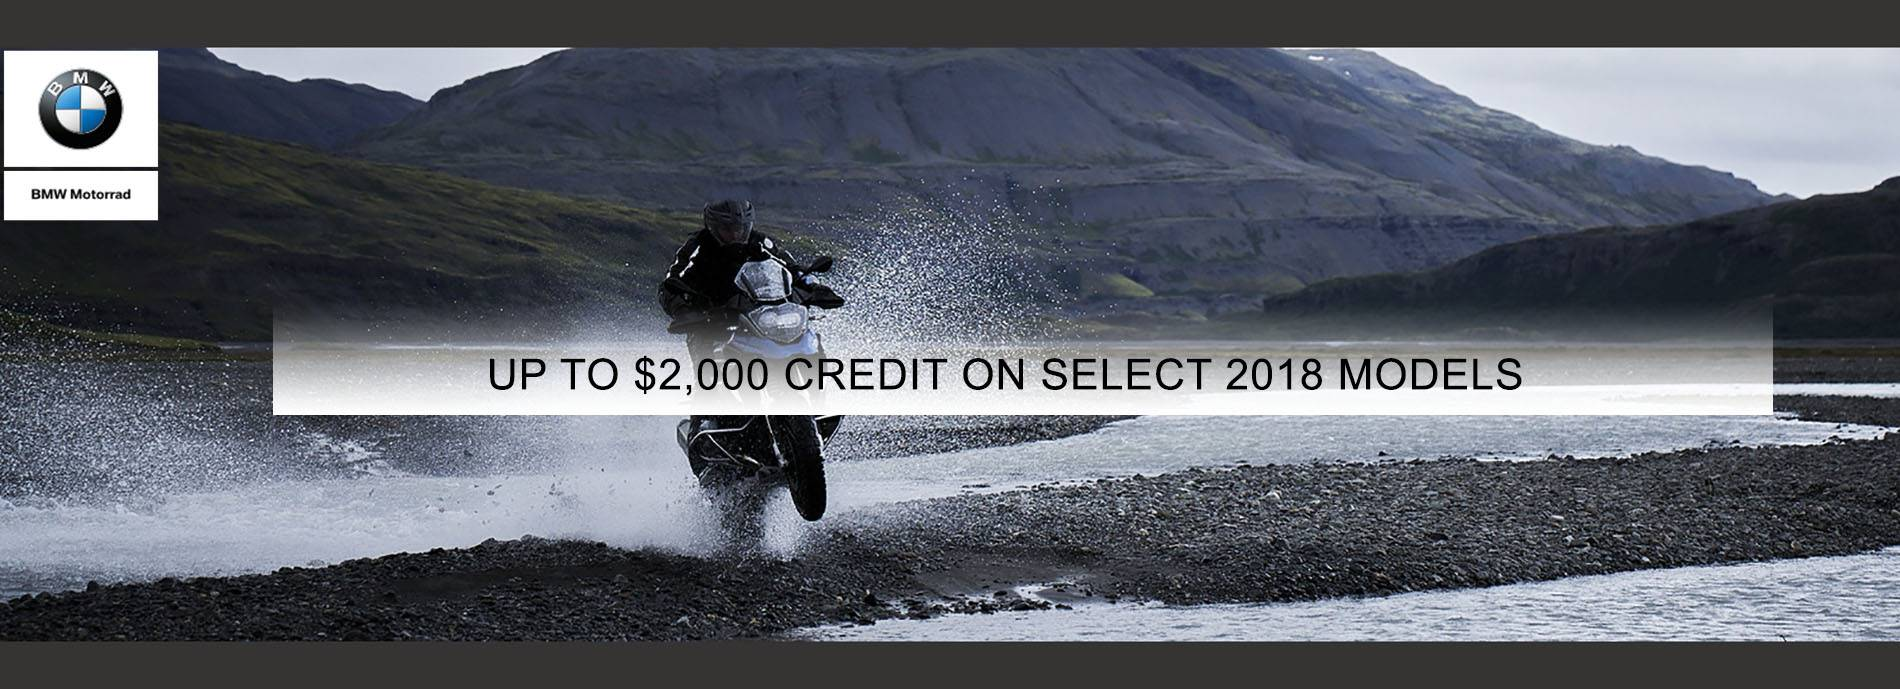 BMW - Up To $2,000 Credit On Select 2018 Models